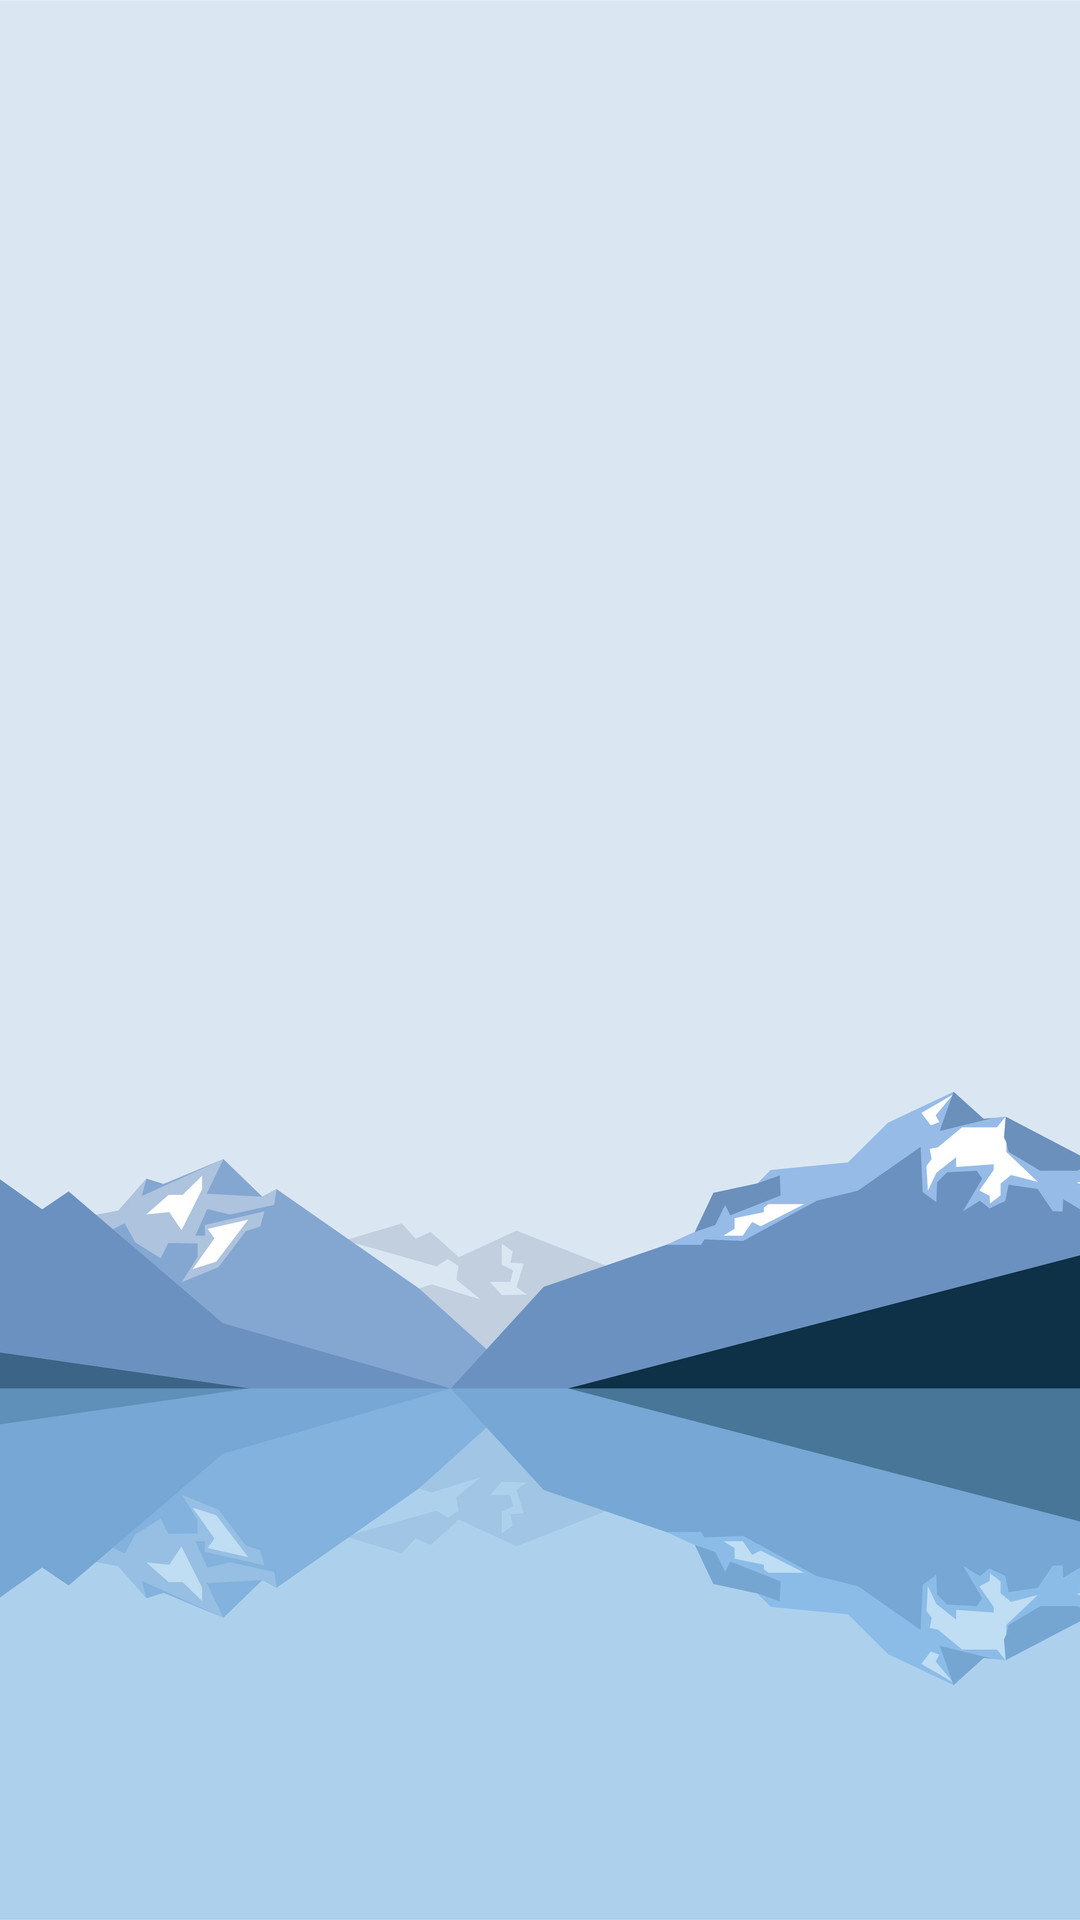 Minimalist Blue Mountains 8k 2x Wallpaper 1080x1920